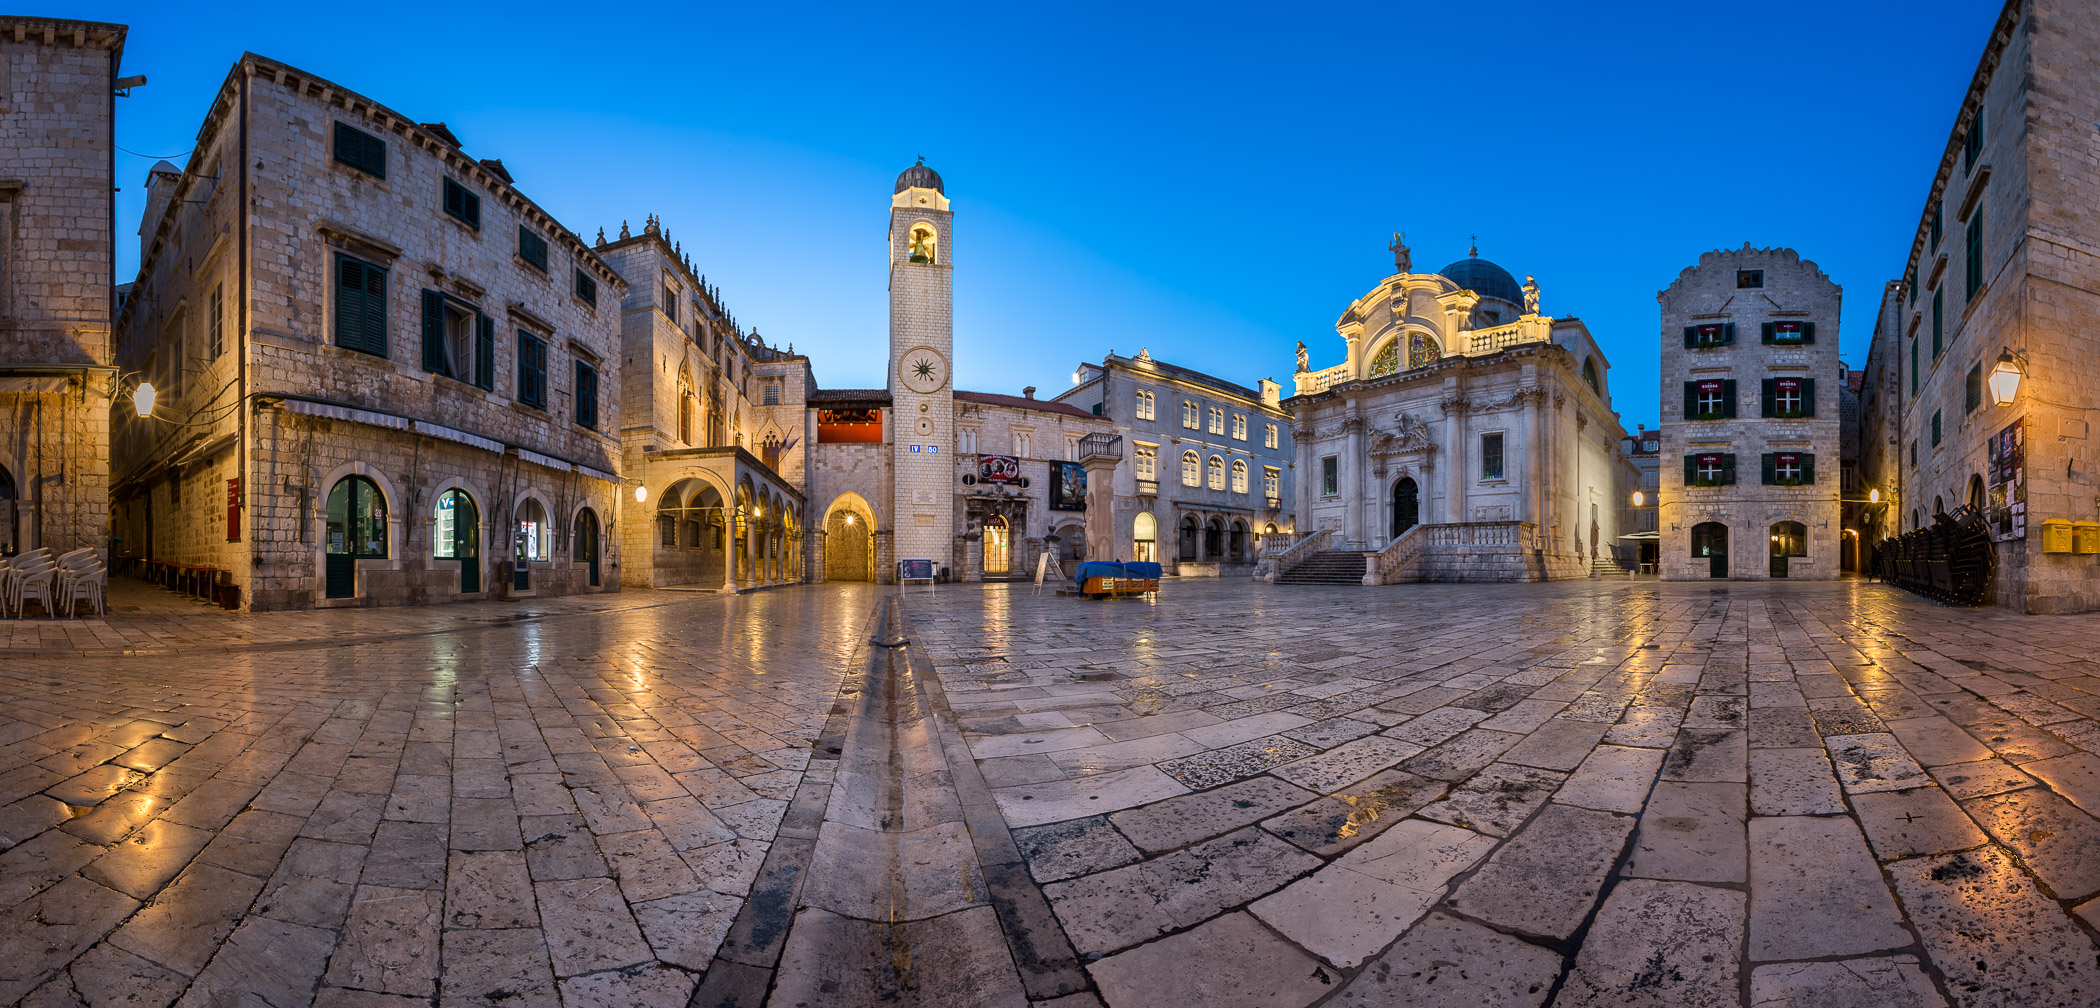 Panorama of Luza Square and Sponza Palace in Dubrovnik